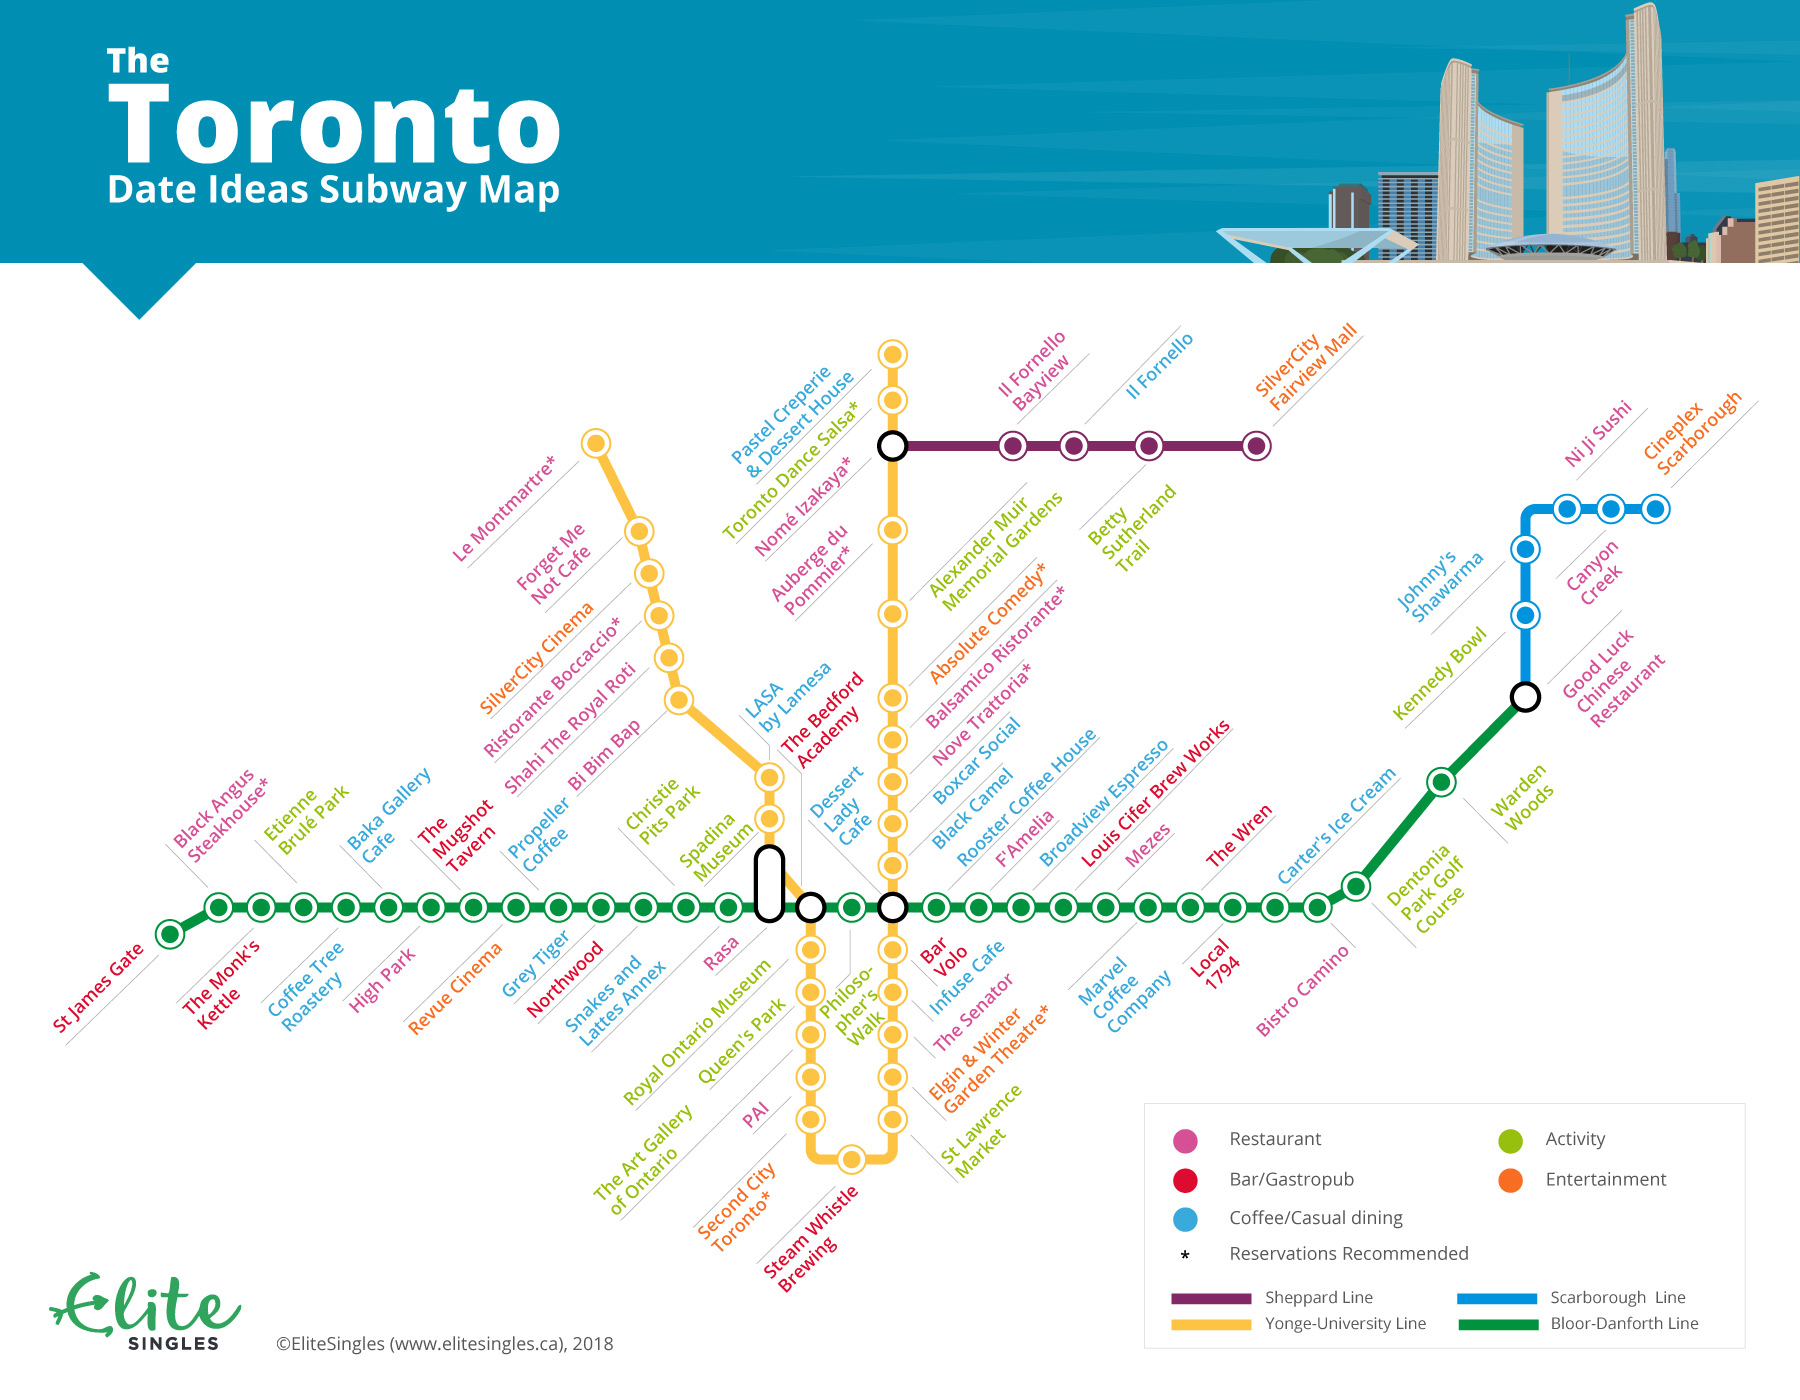 Toronto Date Ideas Subway Map Oct 2018